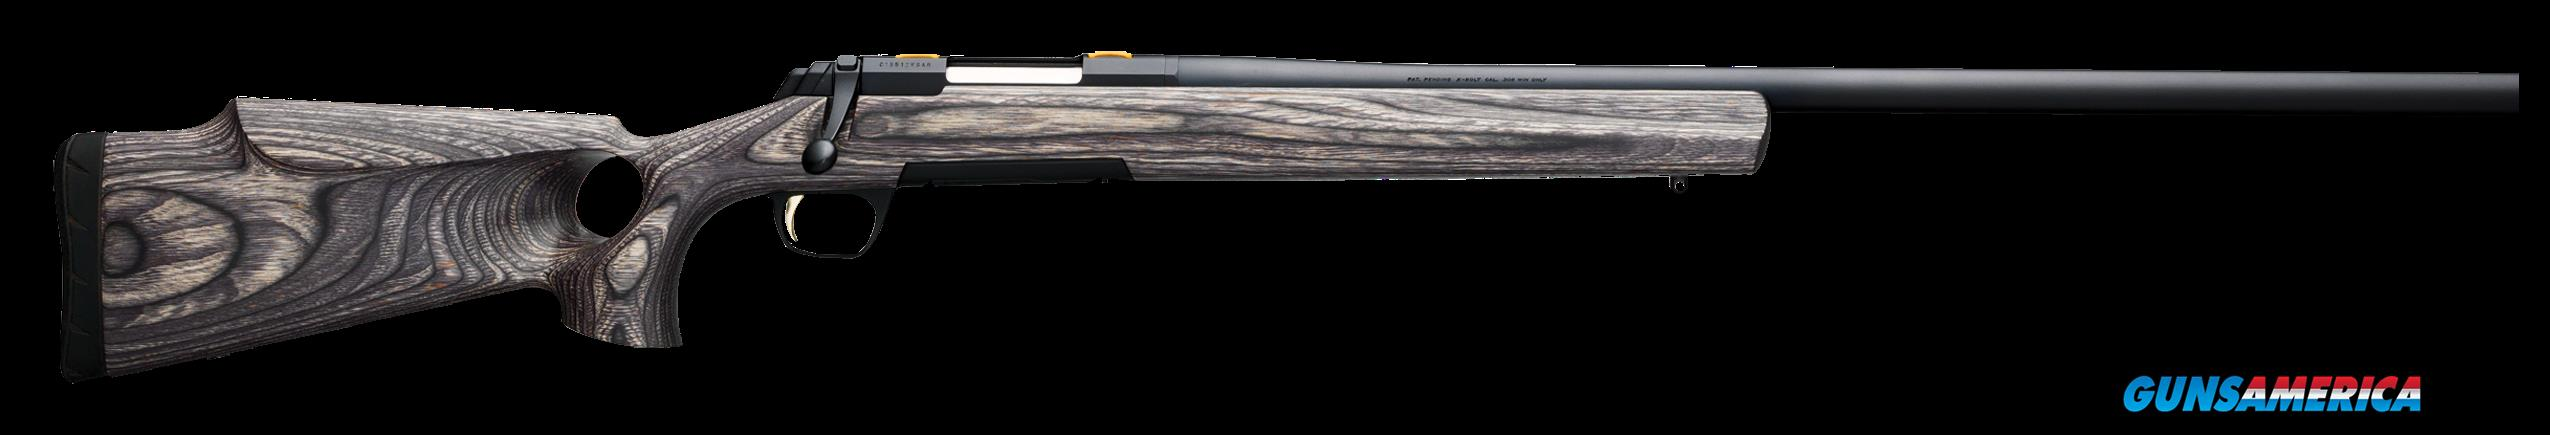 "Browning 035337282 X-Bolt Eclipse Target Bolt 6.5 Creedmoor 28"" 4+1 Laminate Thumbhole Black/Gray  Guns > Shotguns > Browning Shotguns > Single Barrel"